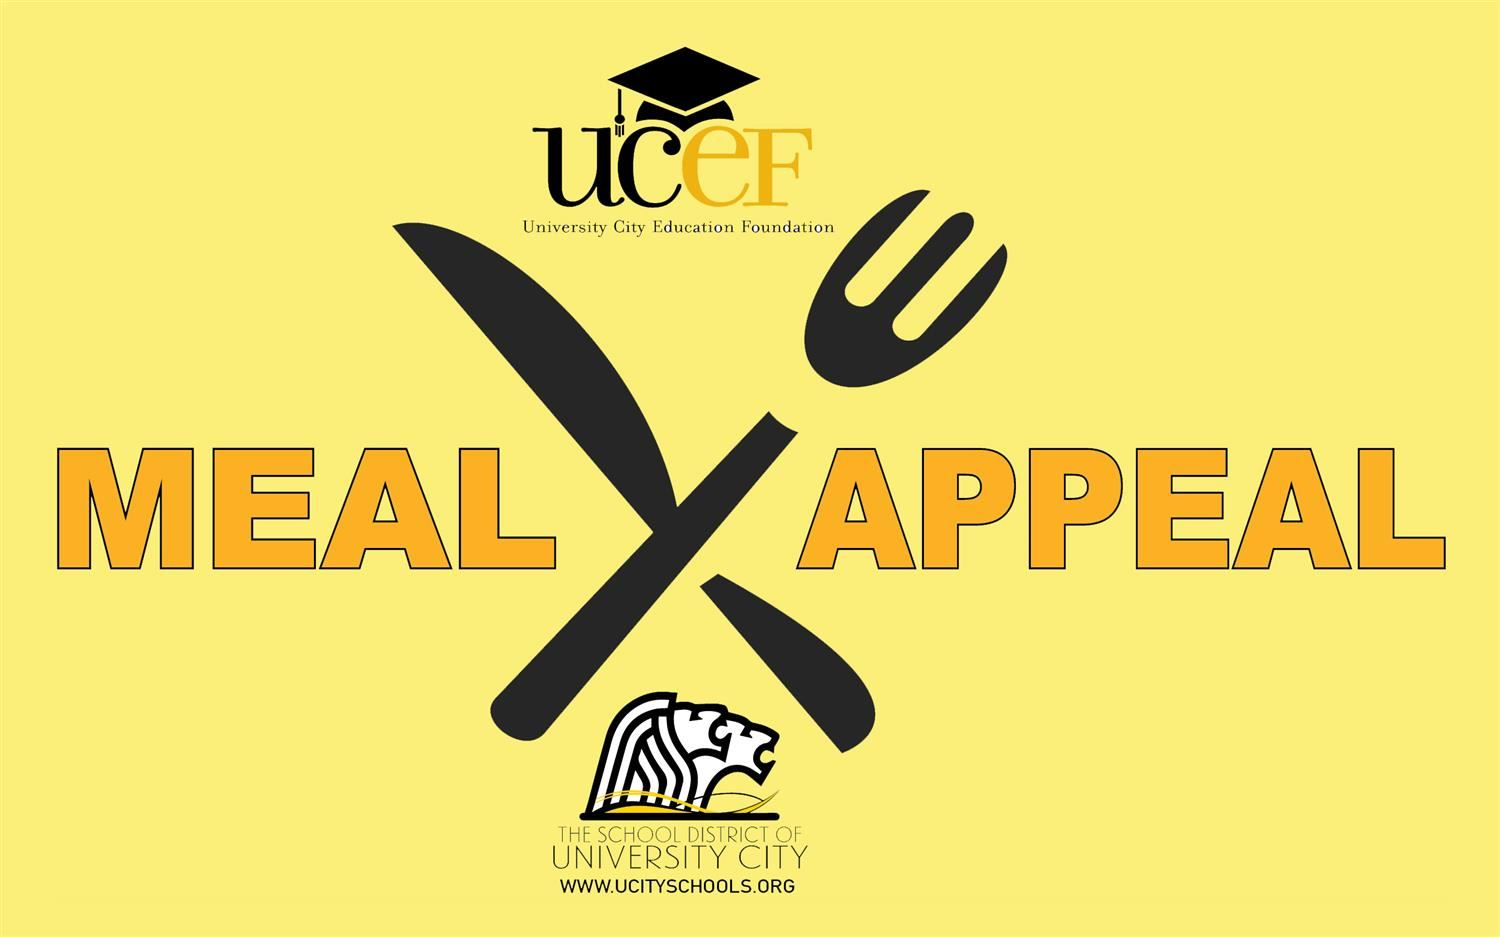 Want to Help During COVID-19? The UCEF Summer Meal Appeal Is Now Taking Donations